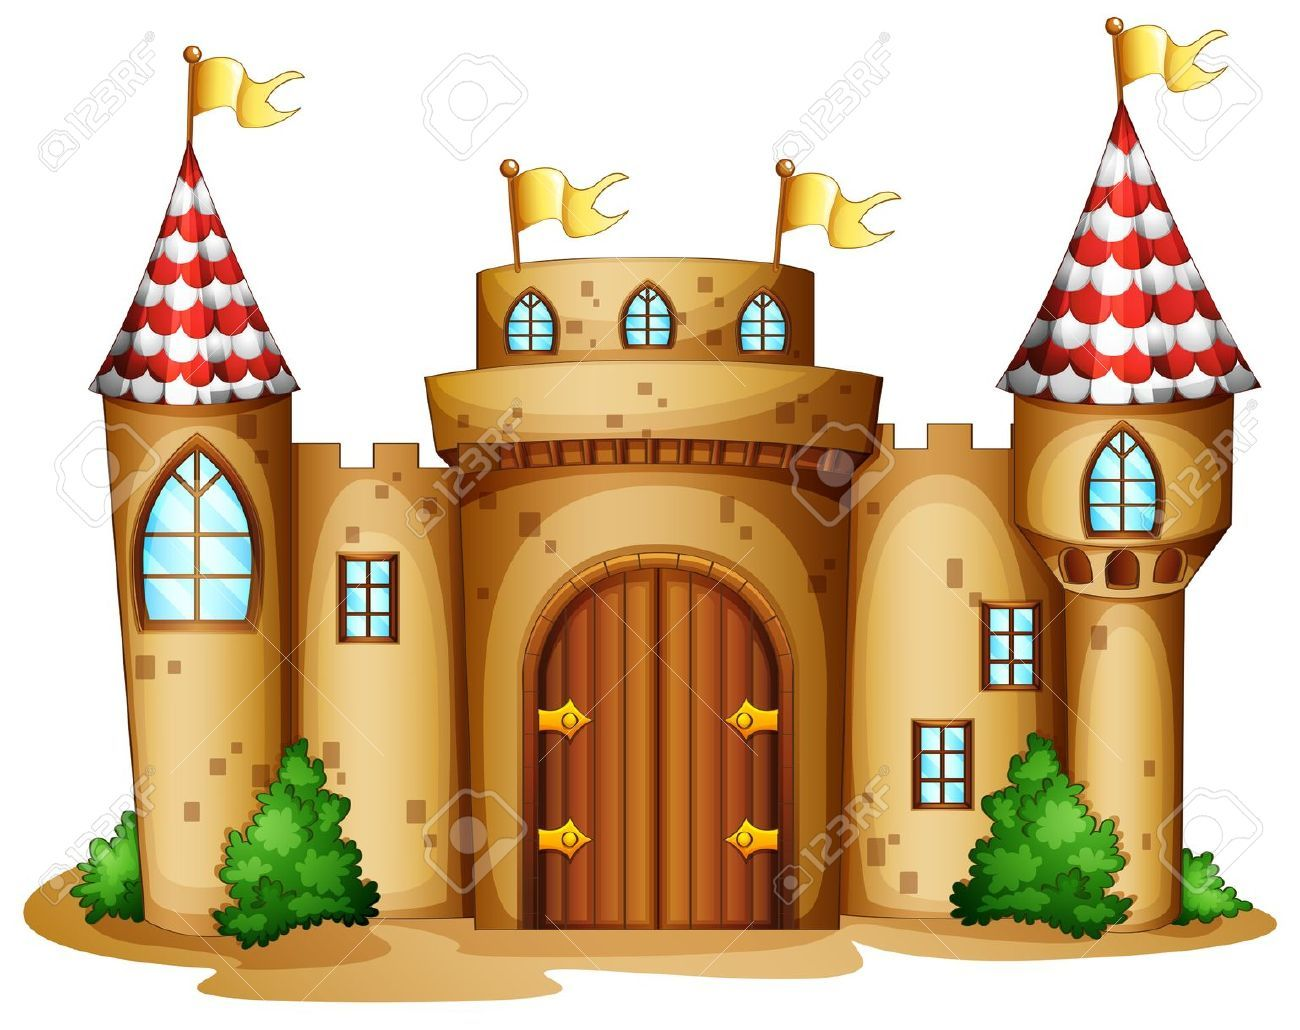 Palace clipart background. Stock vector art castle